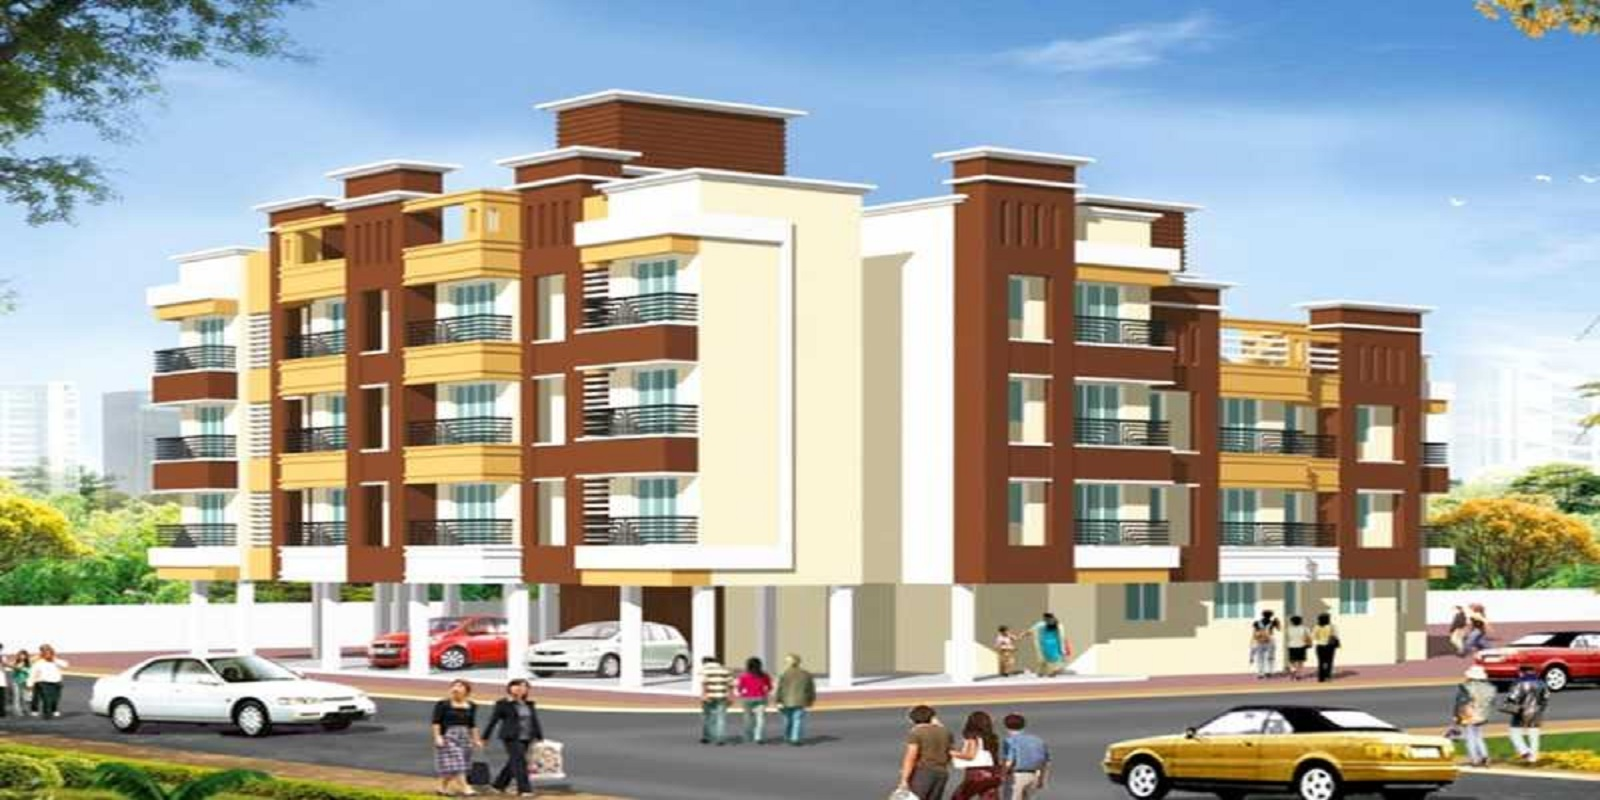 dharti park project project large image1